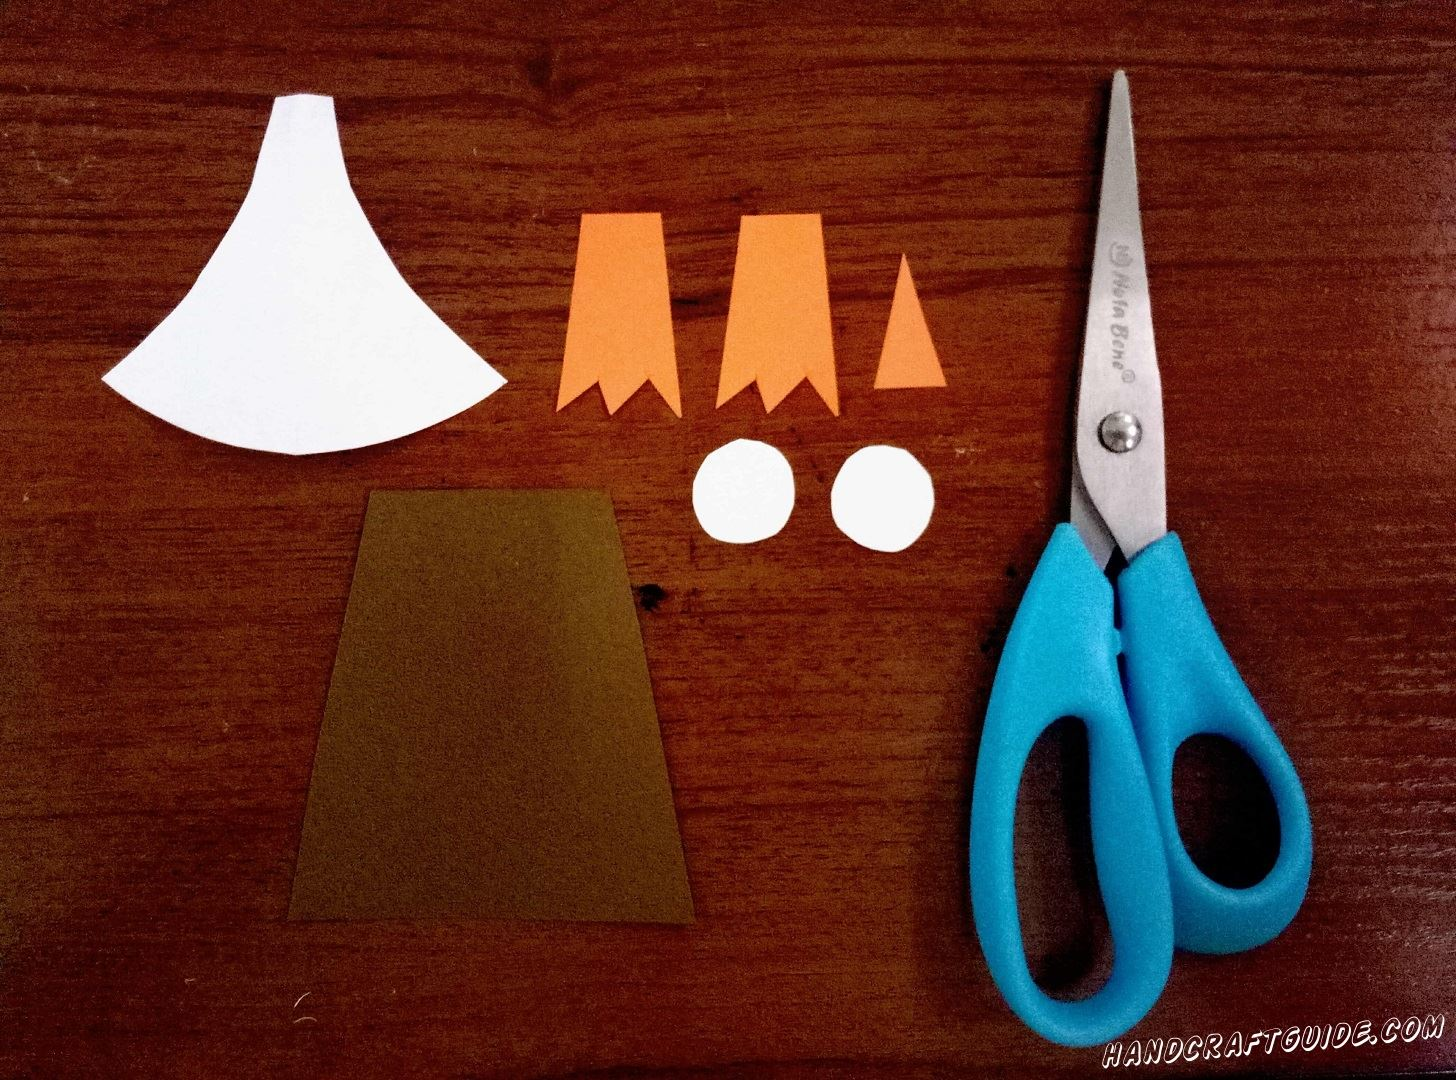 Cut out all necessary parts from black, white and orange paper.